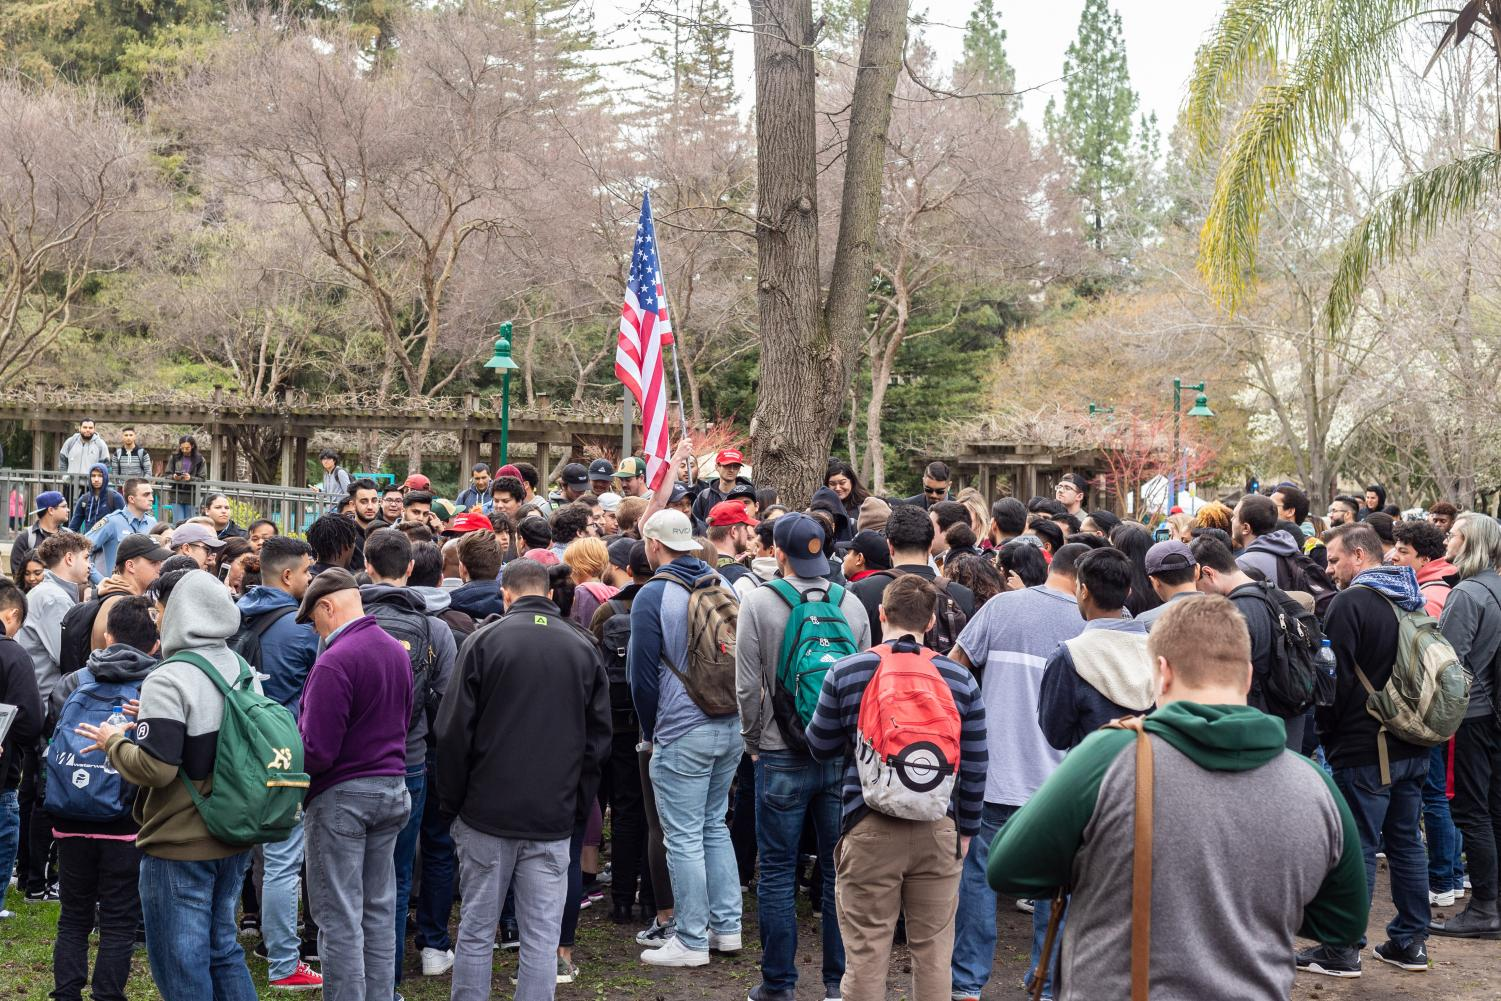 A+crowd+of+nearly+200+gathered+in+the+Library+Quad+after+a+fight+broke+out+at+Sac+State+Thursday+after+a+group+of+men+wearing+Make+America+Great+Again+hats+with+a+Blue+Lives+Matter+flag+accused+The+State+Hornet+of+inciting+violence+in+its+latest+print+issue.